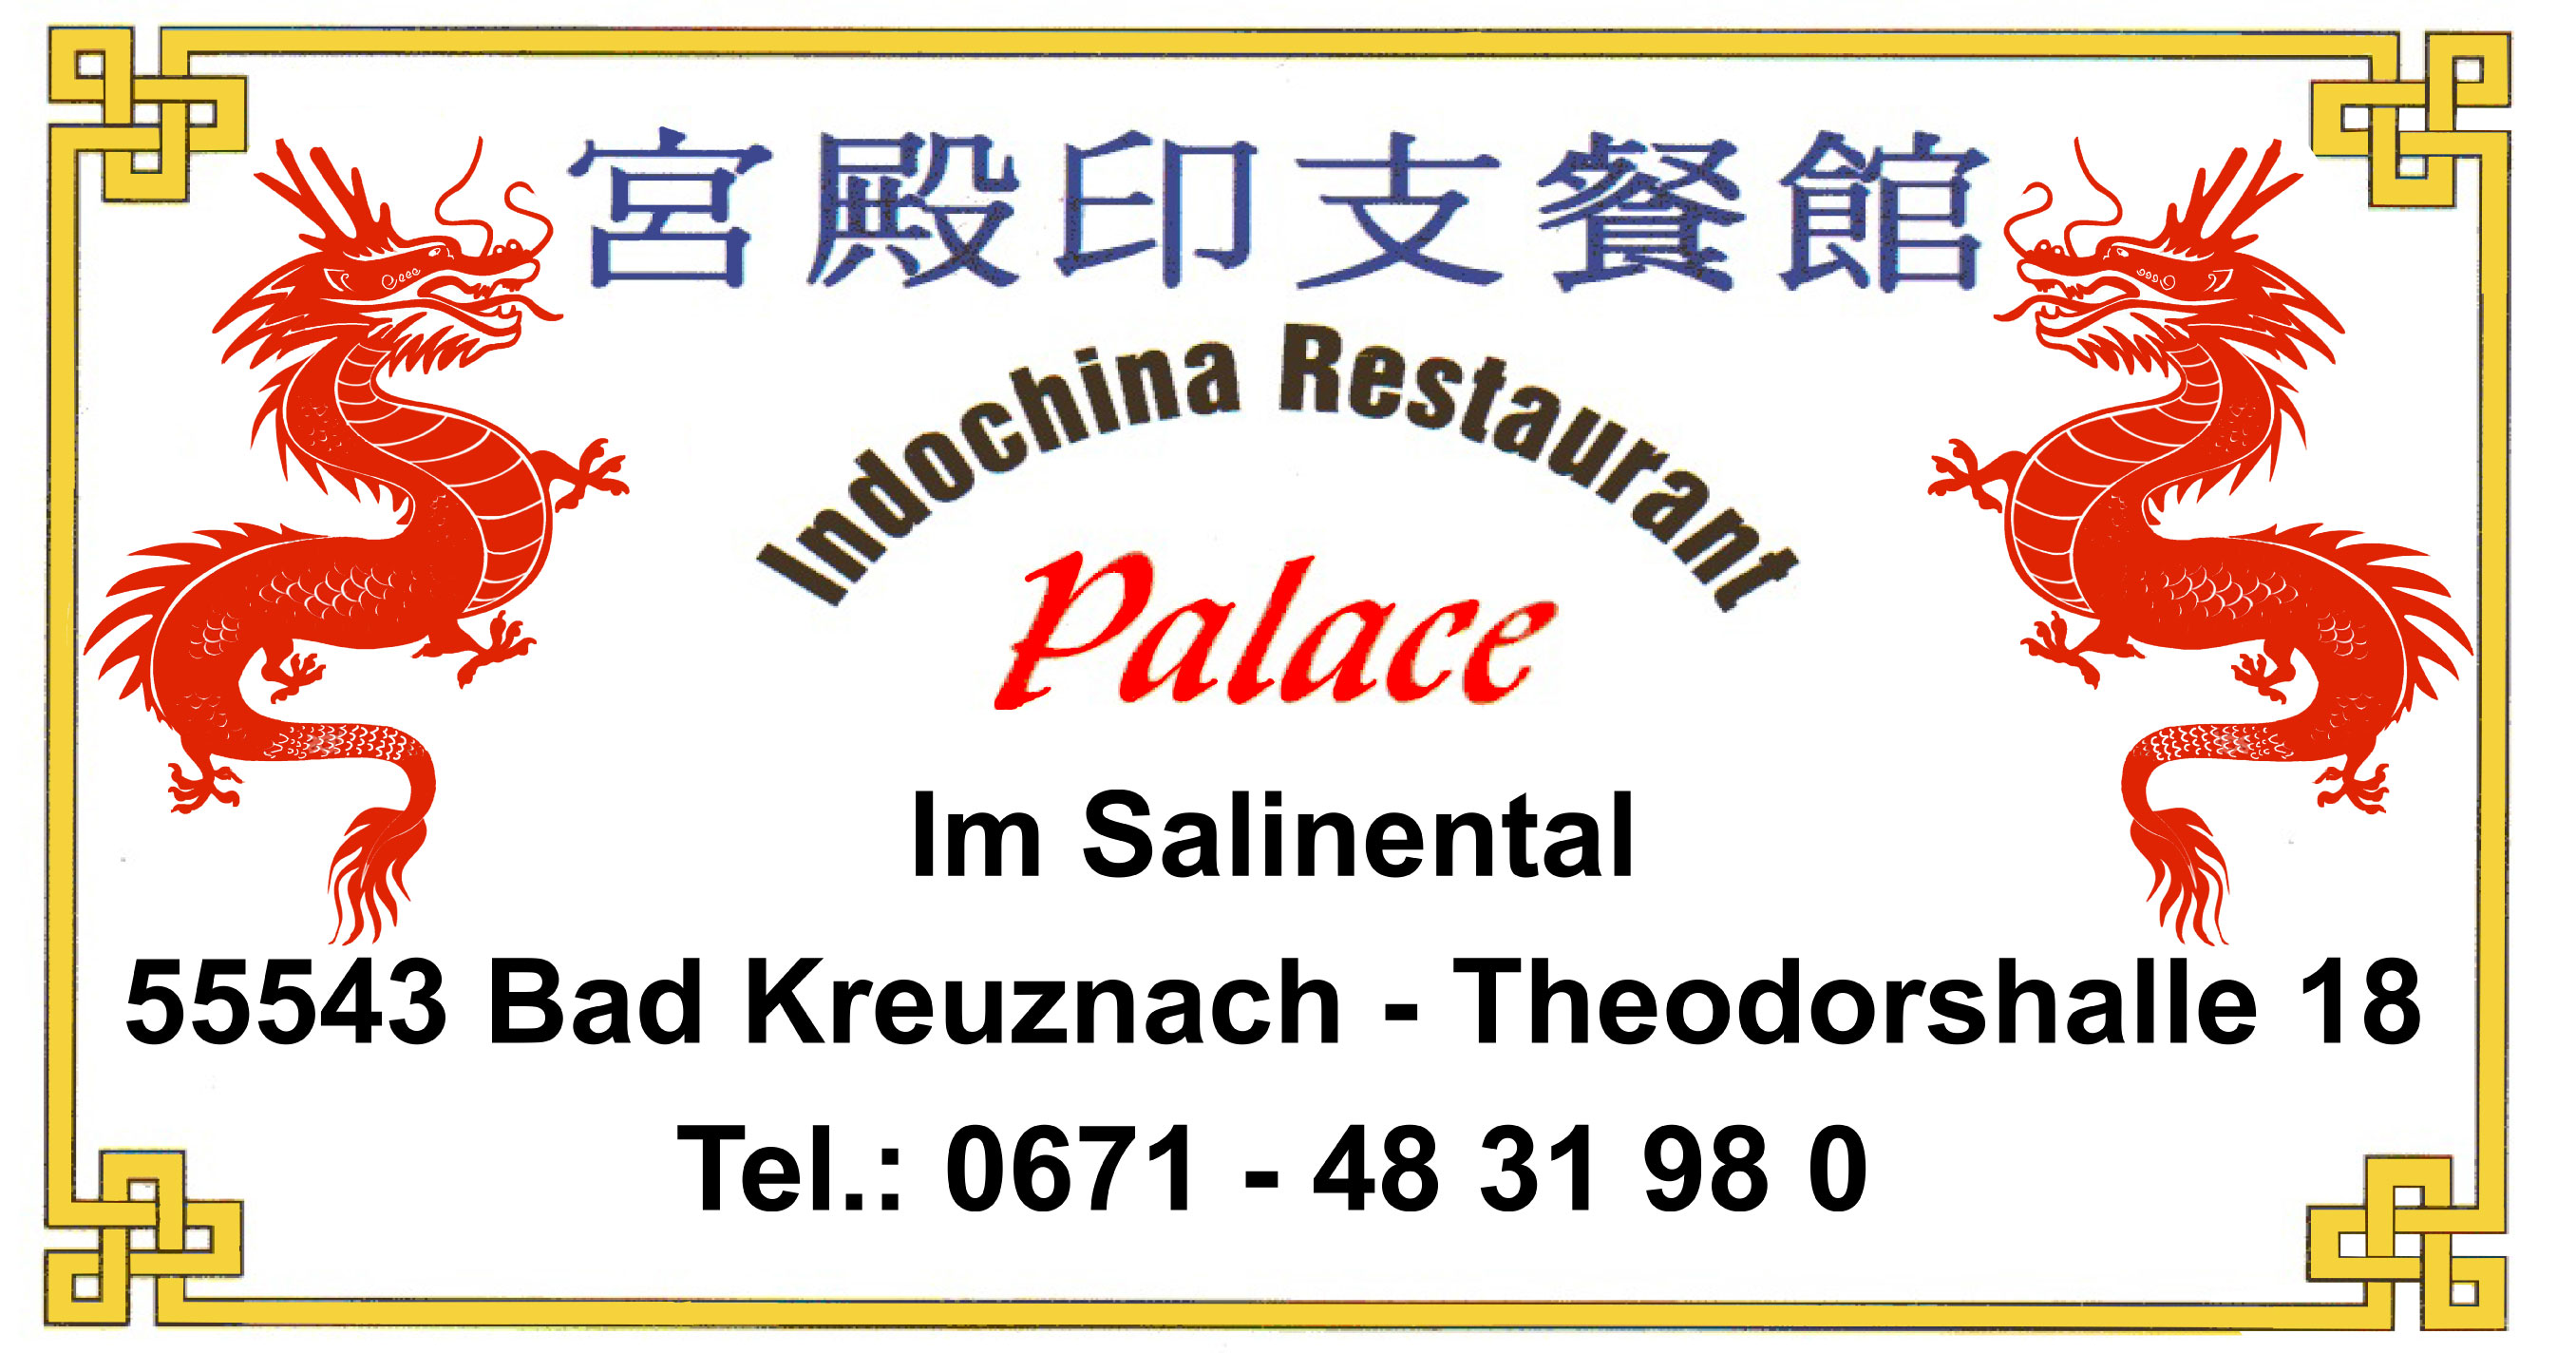 Restaurant Indochina Palace